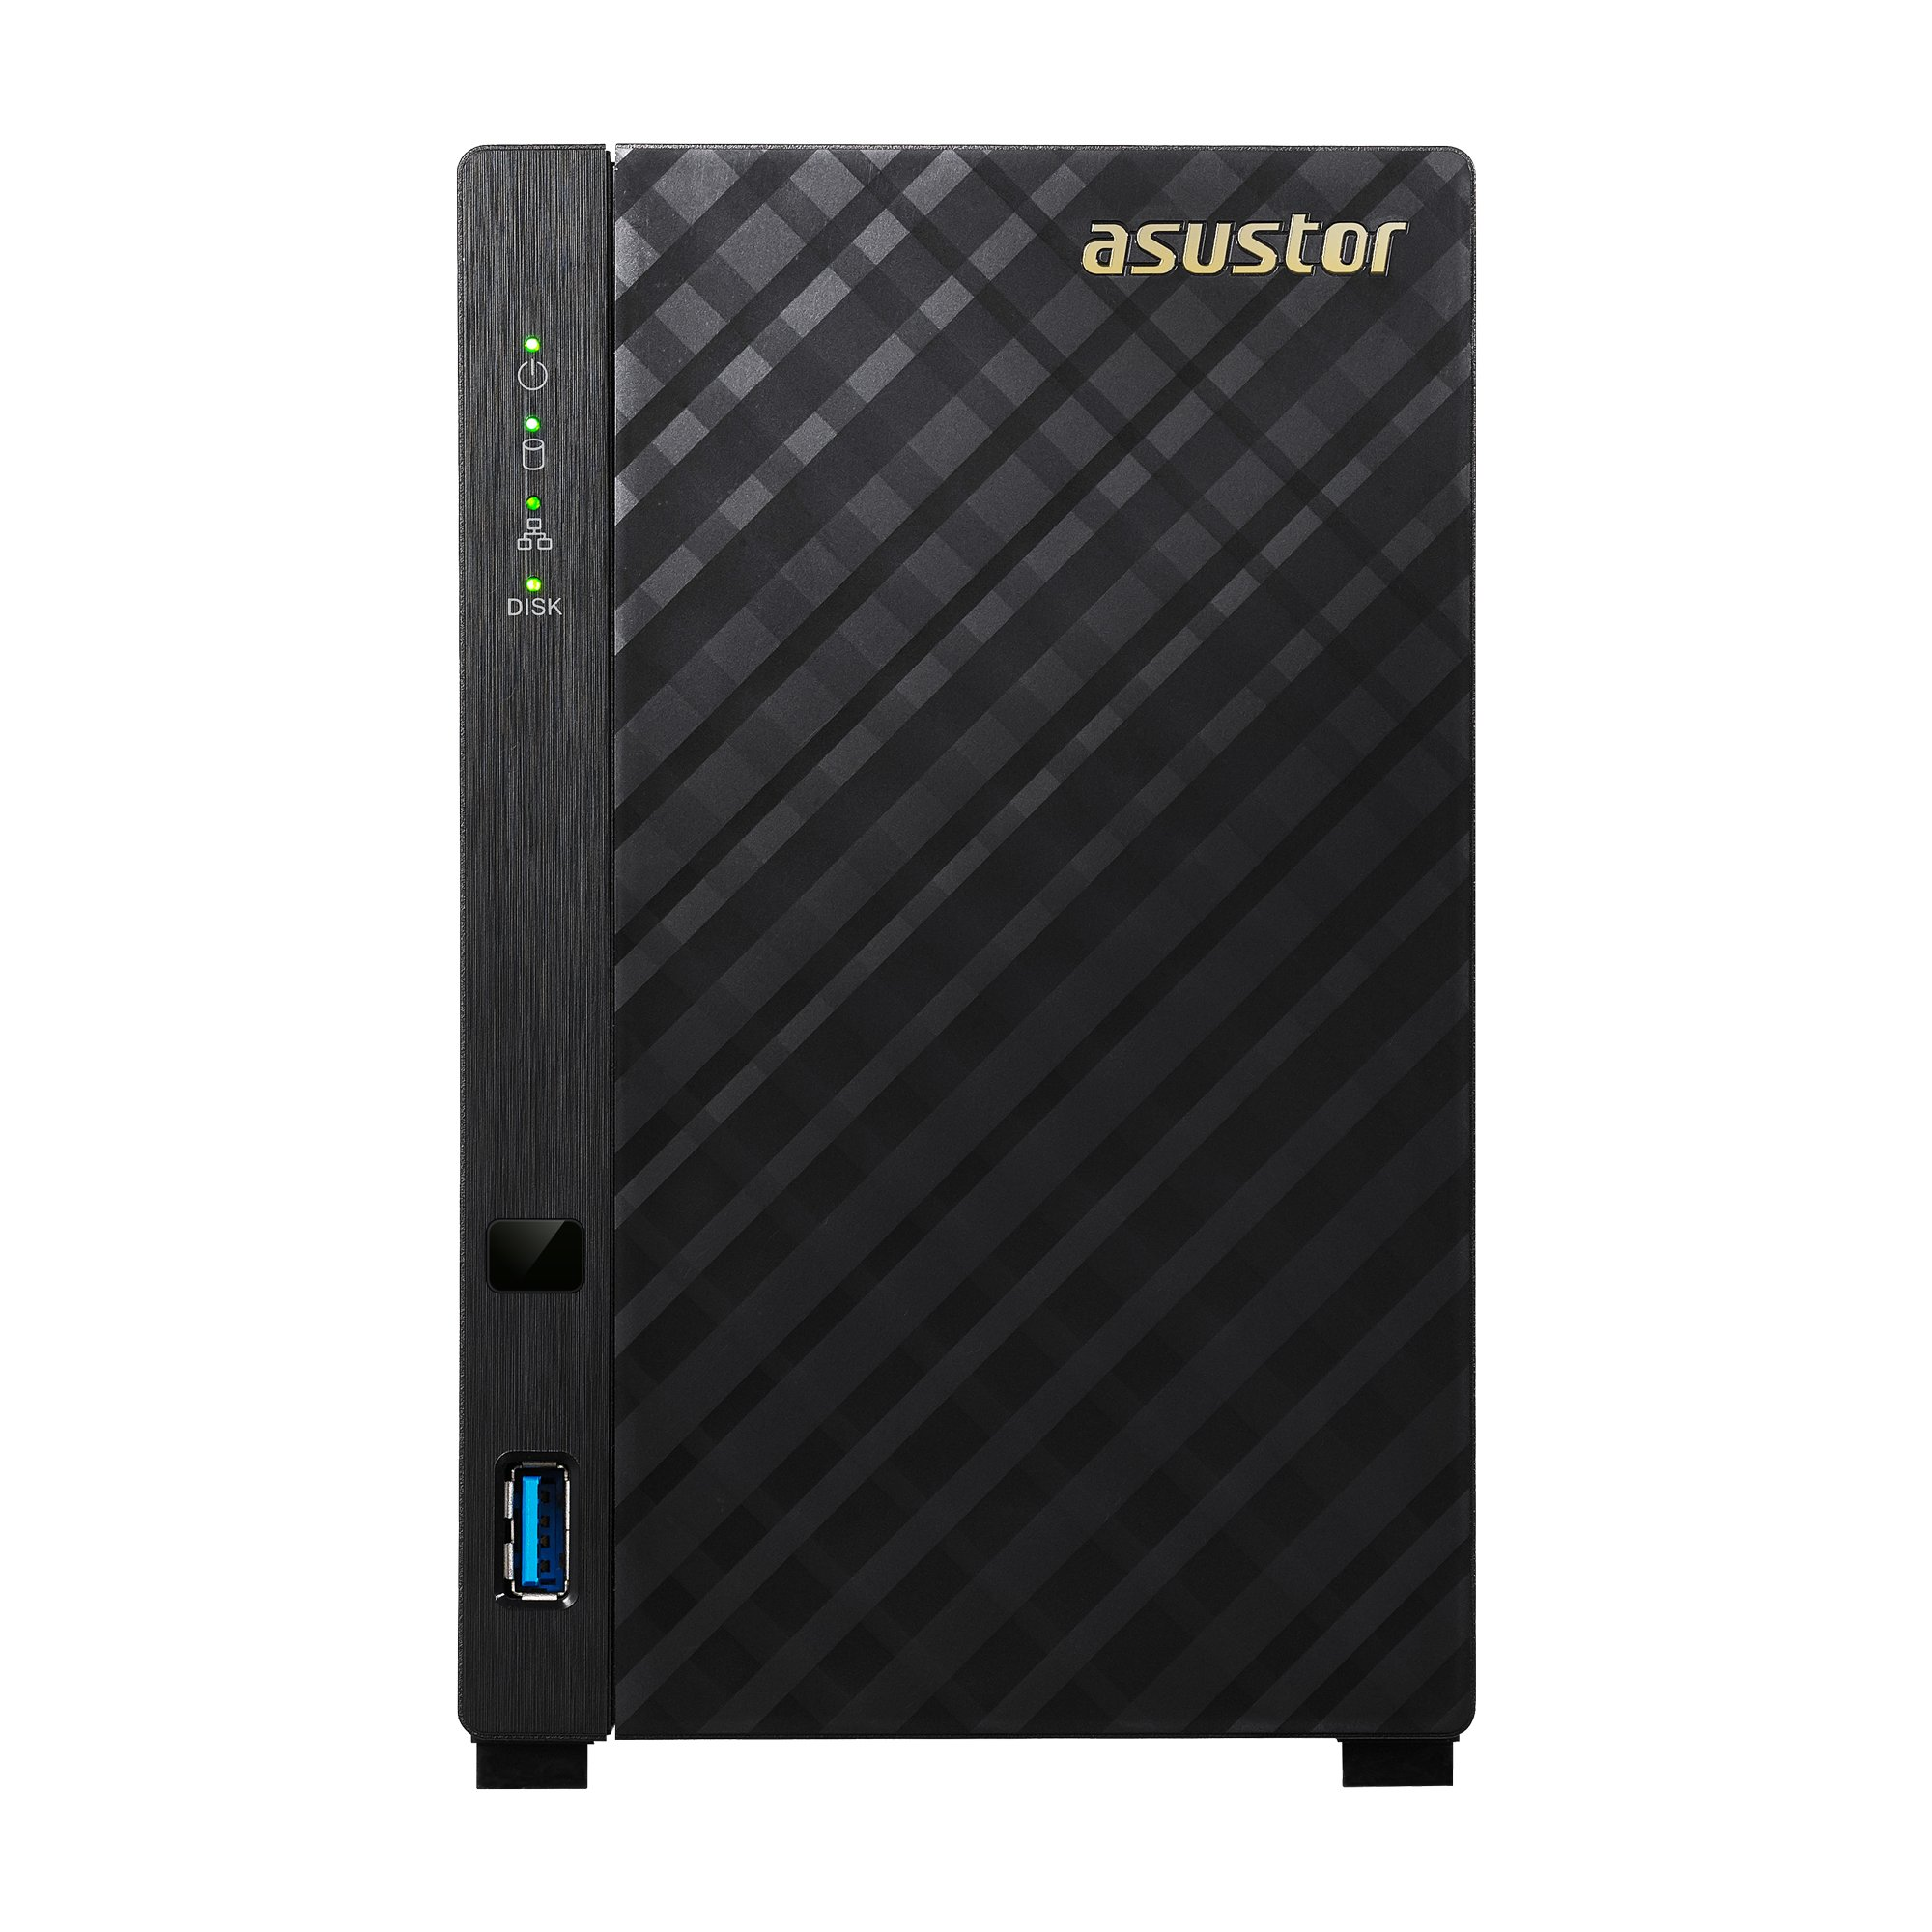 Asustor AS3102T v2, 2-Bay NAS (Diskless), Intel 1.6GHz Dual-Core, 2GB RAM, Personal Cloud NAS